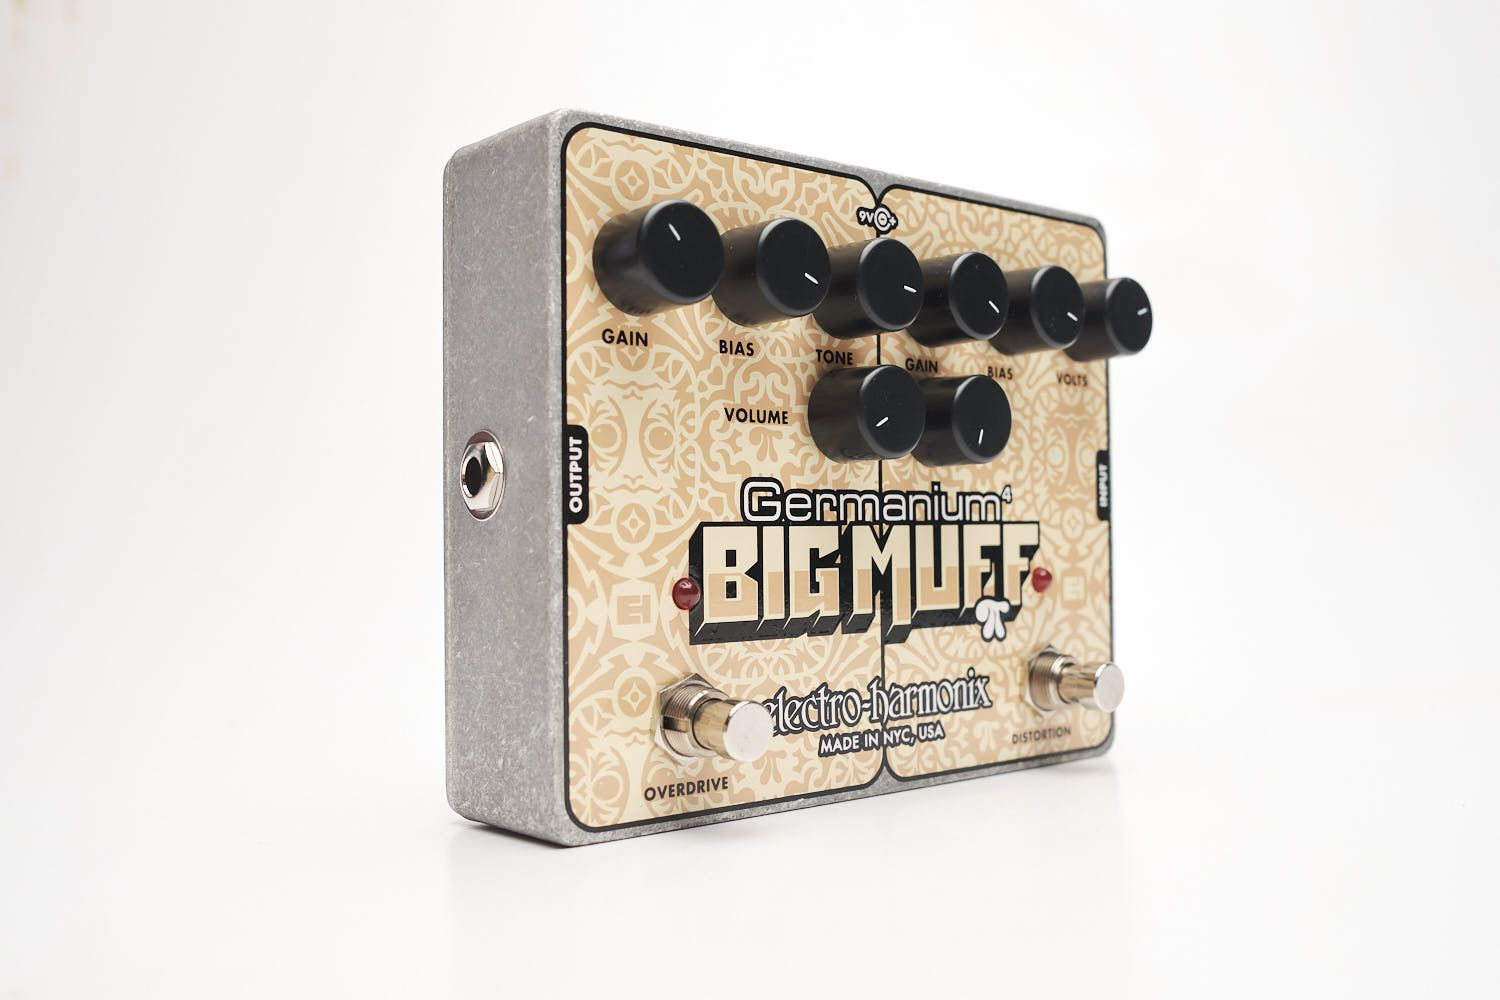 Pedal Electro-harmonix Germanium 4 Big Muff Pi Distortion